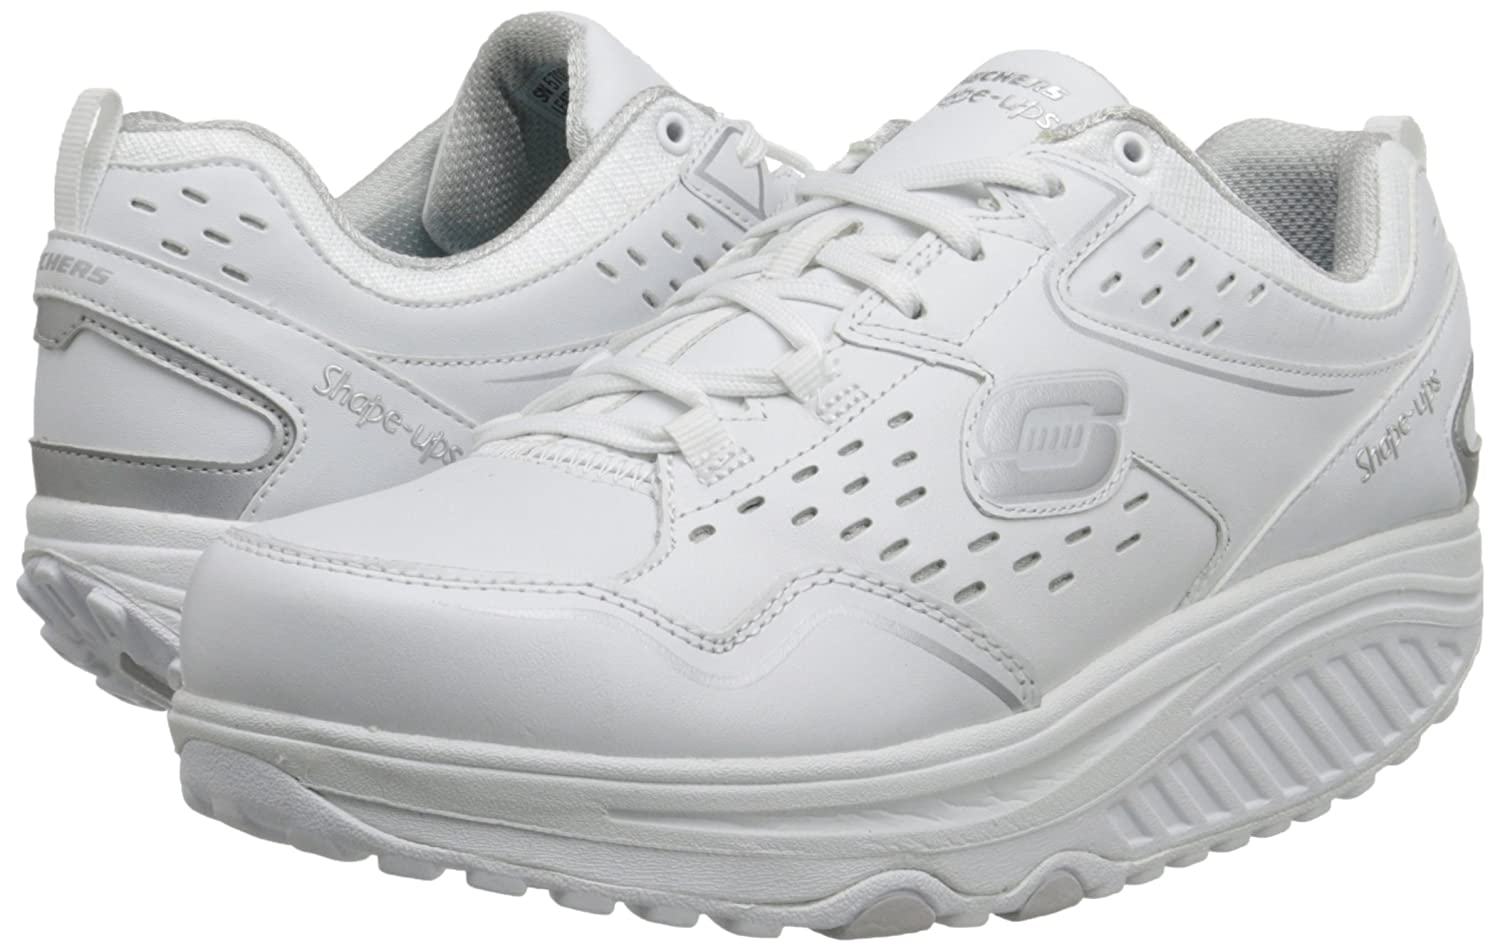 Skechers Forma Ups 2.0 Revisiones 8W3qPcwkoD